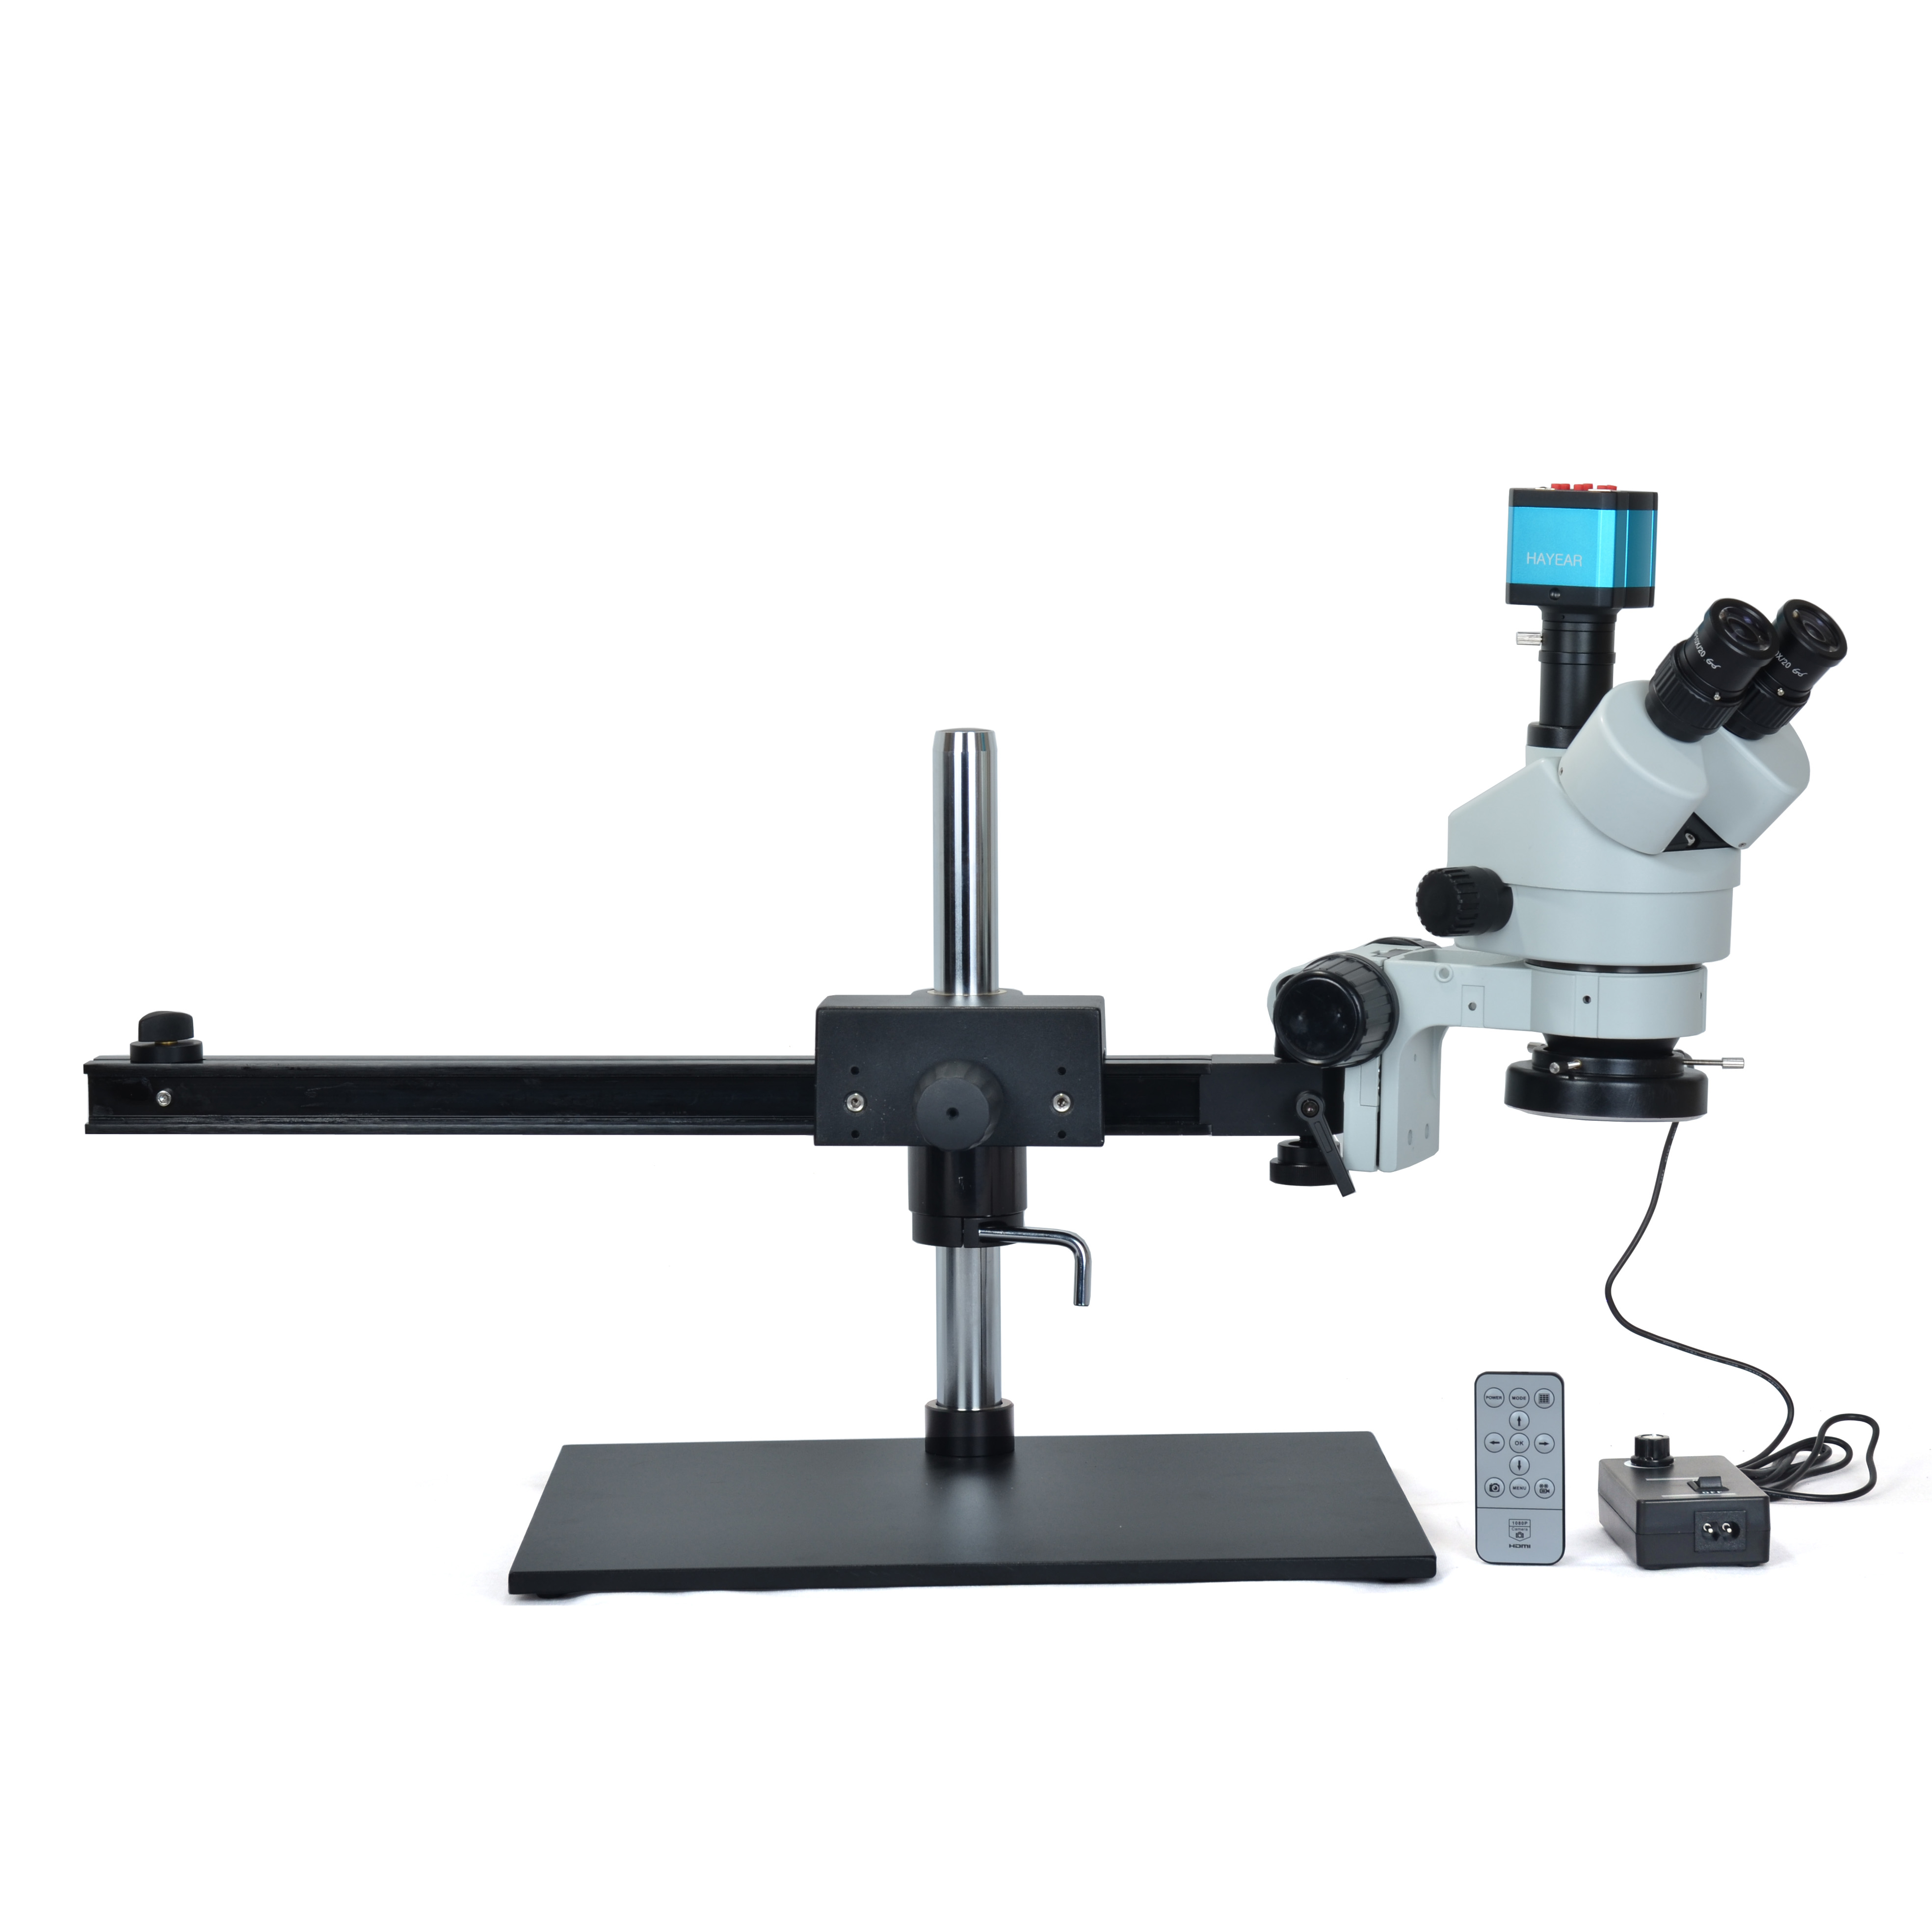 Simul-focal 7X-45X Trinocular Stereo Microscope 14MP HDMI Industrial Microscope Camera+60 LED light with Big Table Stand